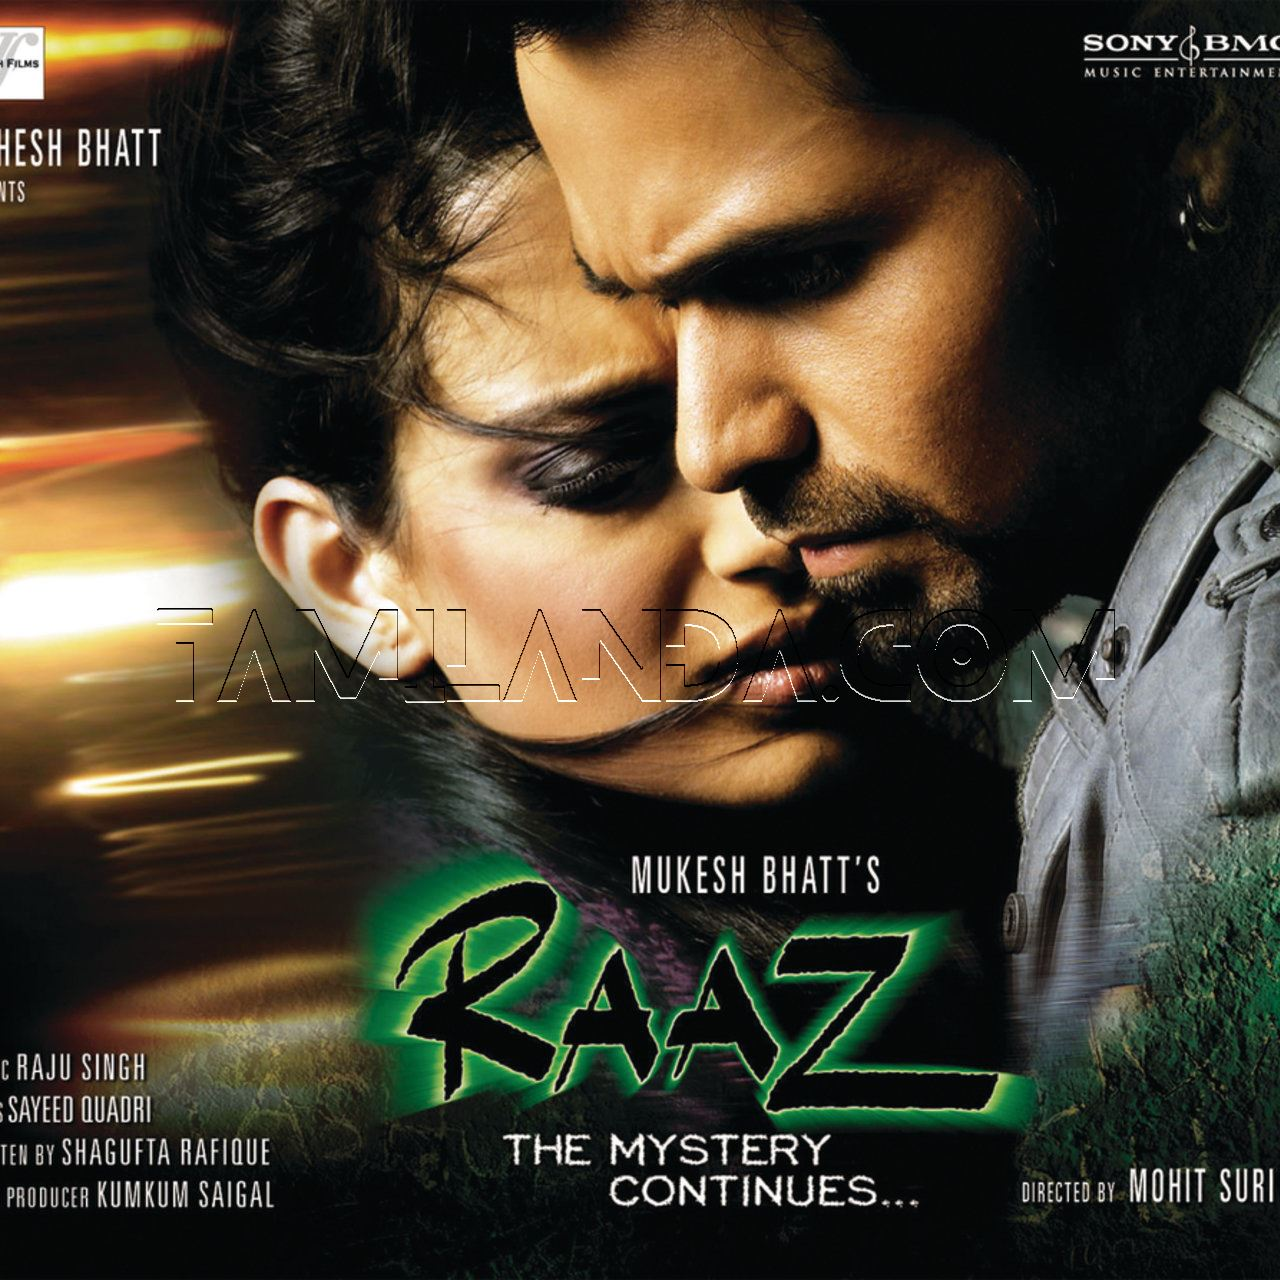 RAAZ – The Mystery Continues (2008) FLAC Songs